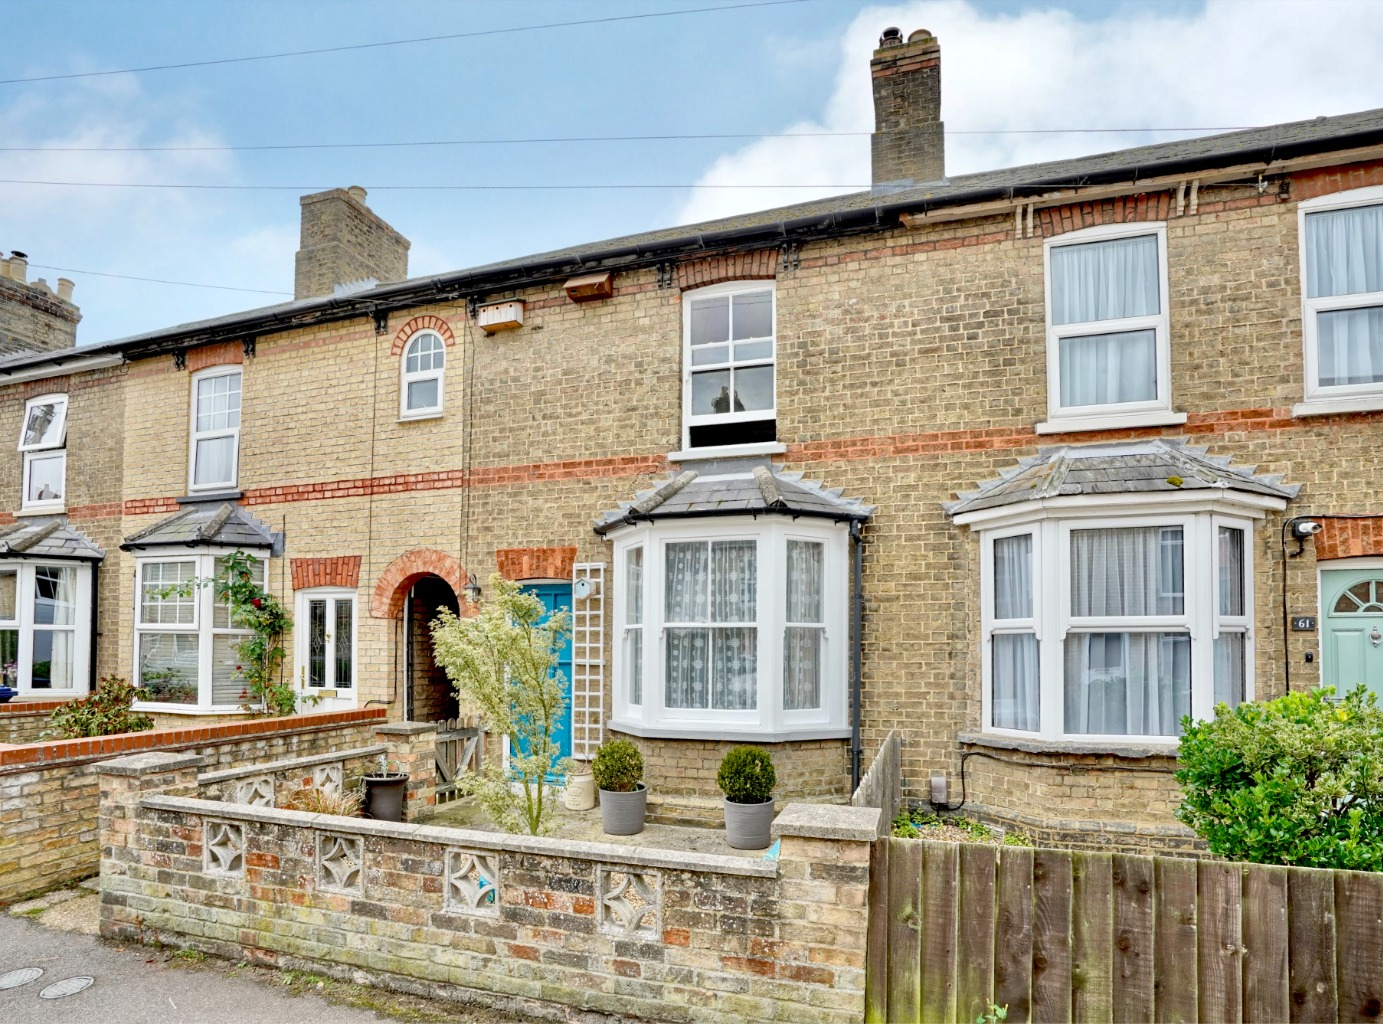 2 bed terraced house for sale in Luke Street, St. Neots - Property Image 1